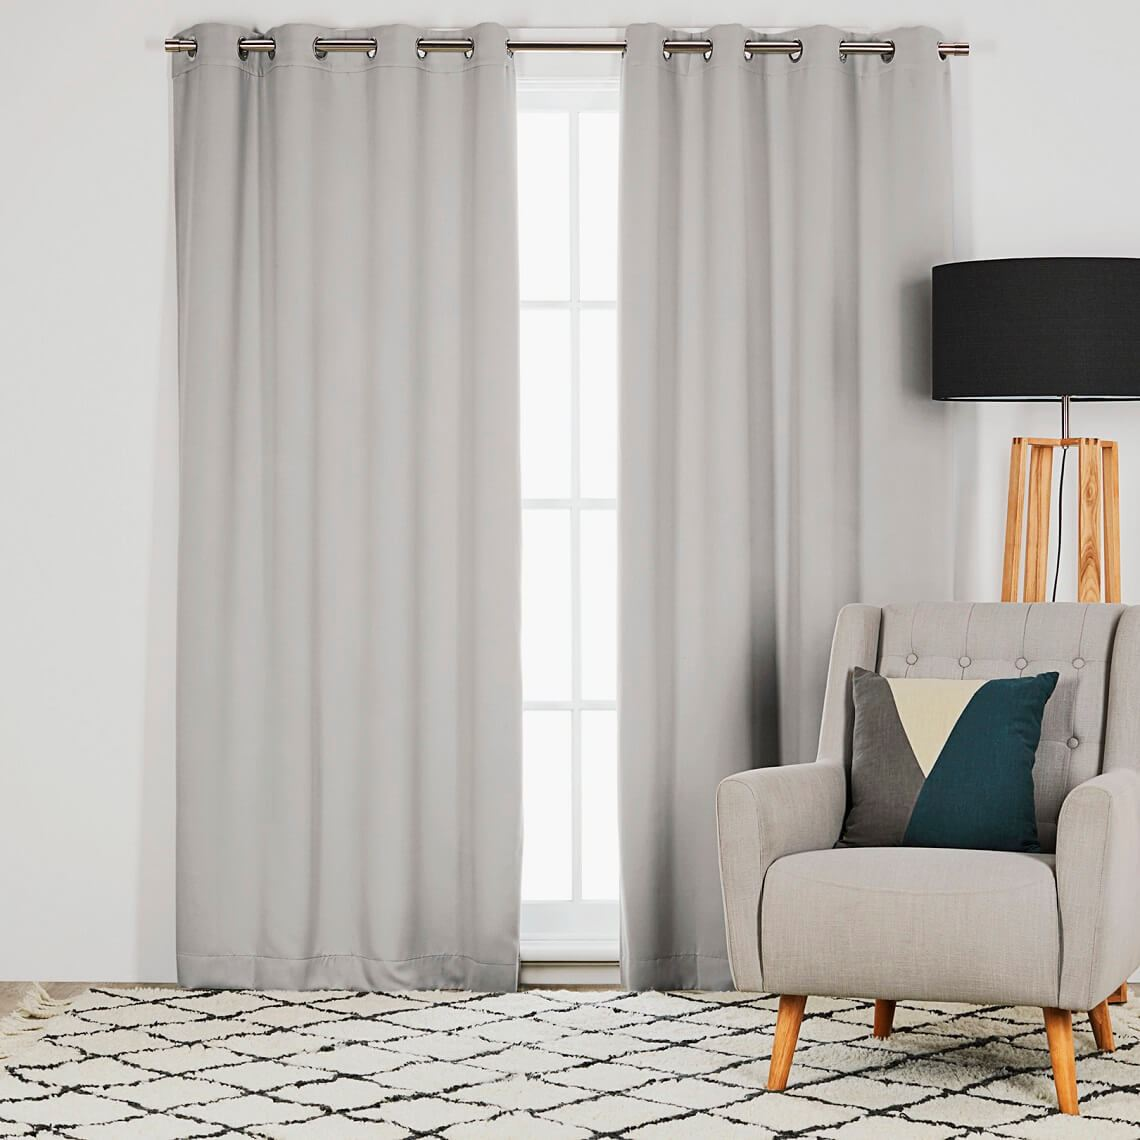 Barlow Room Darkening Eyelet Curtain Size W 135cm x D 0cm x H 230cm in Stone 100% Polyester/Acrylic Flock Coating/Stainless Steel Freedom by Freedom, a Curtains for sale on Style Sourcebook